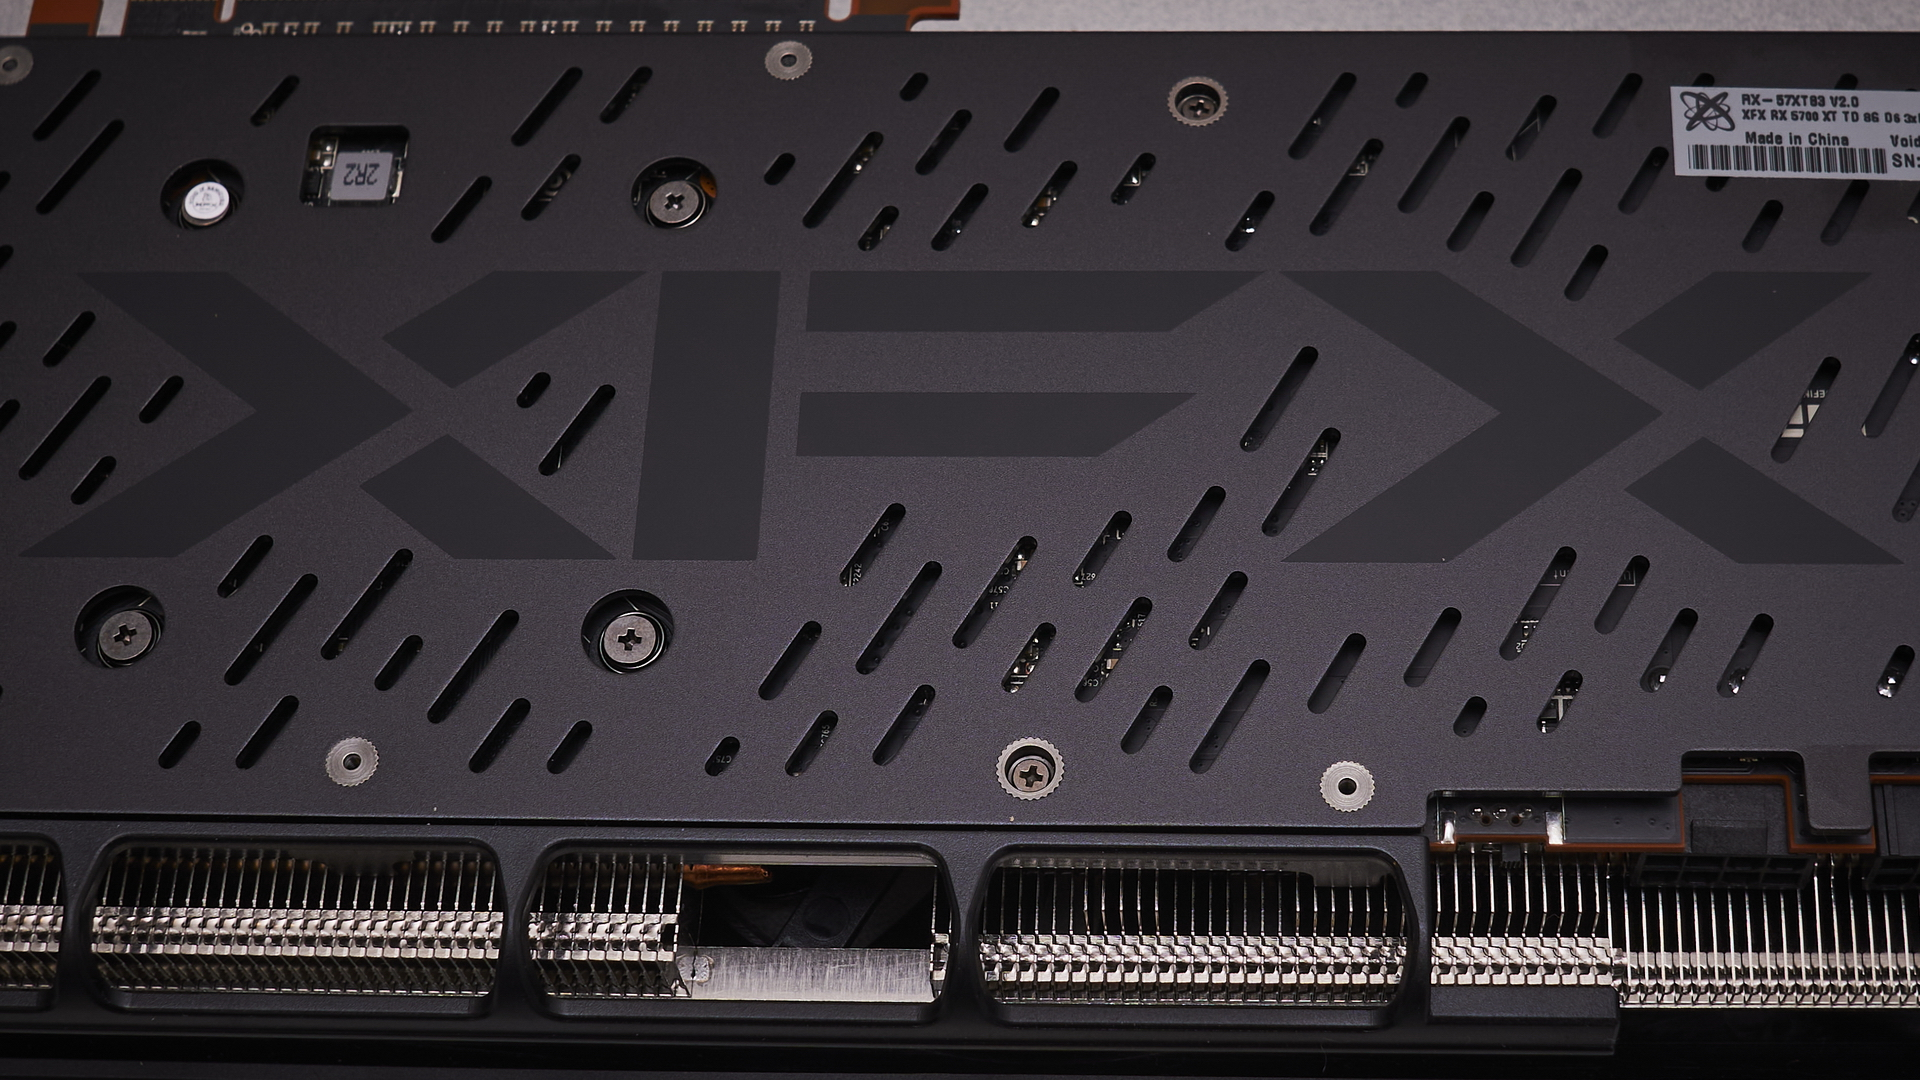 XFX RX 5700 XT Tripple Dissipation review | WASD.ro